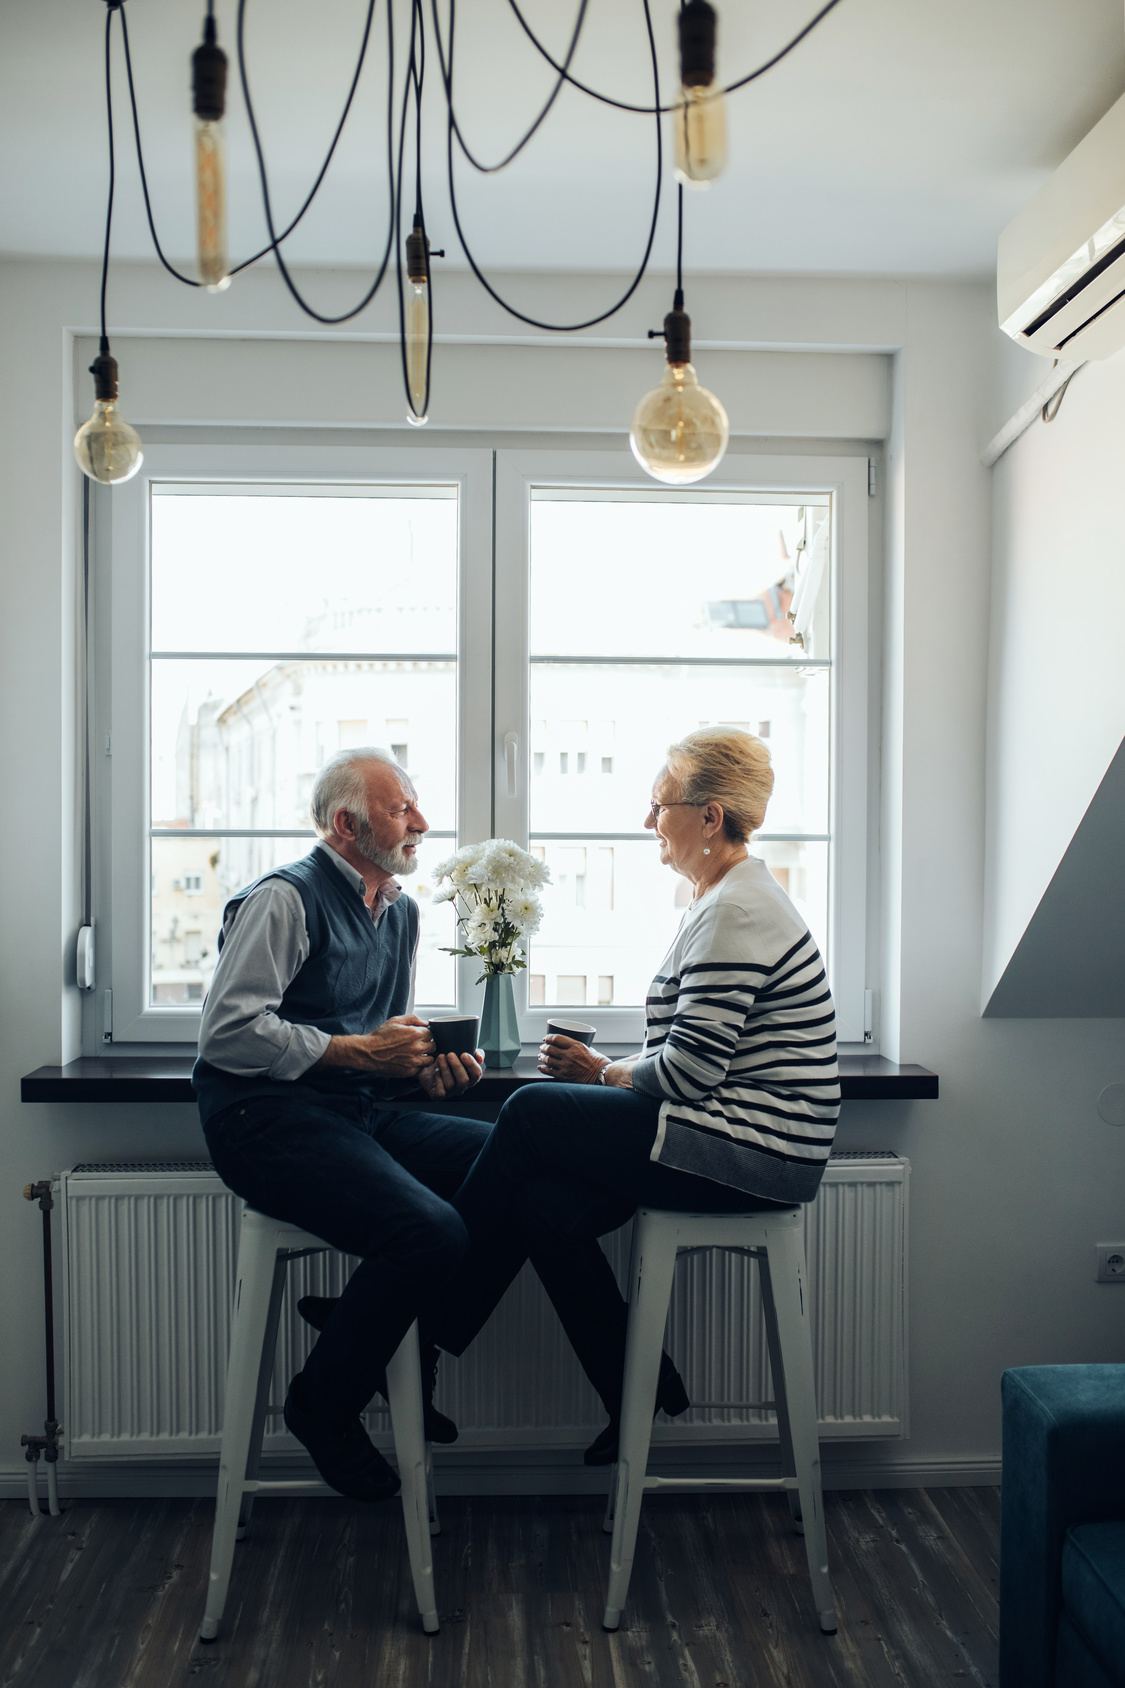 Elderly couple enjoying coffee together